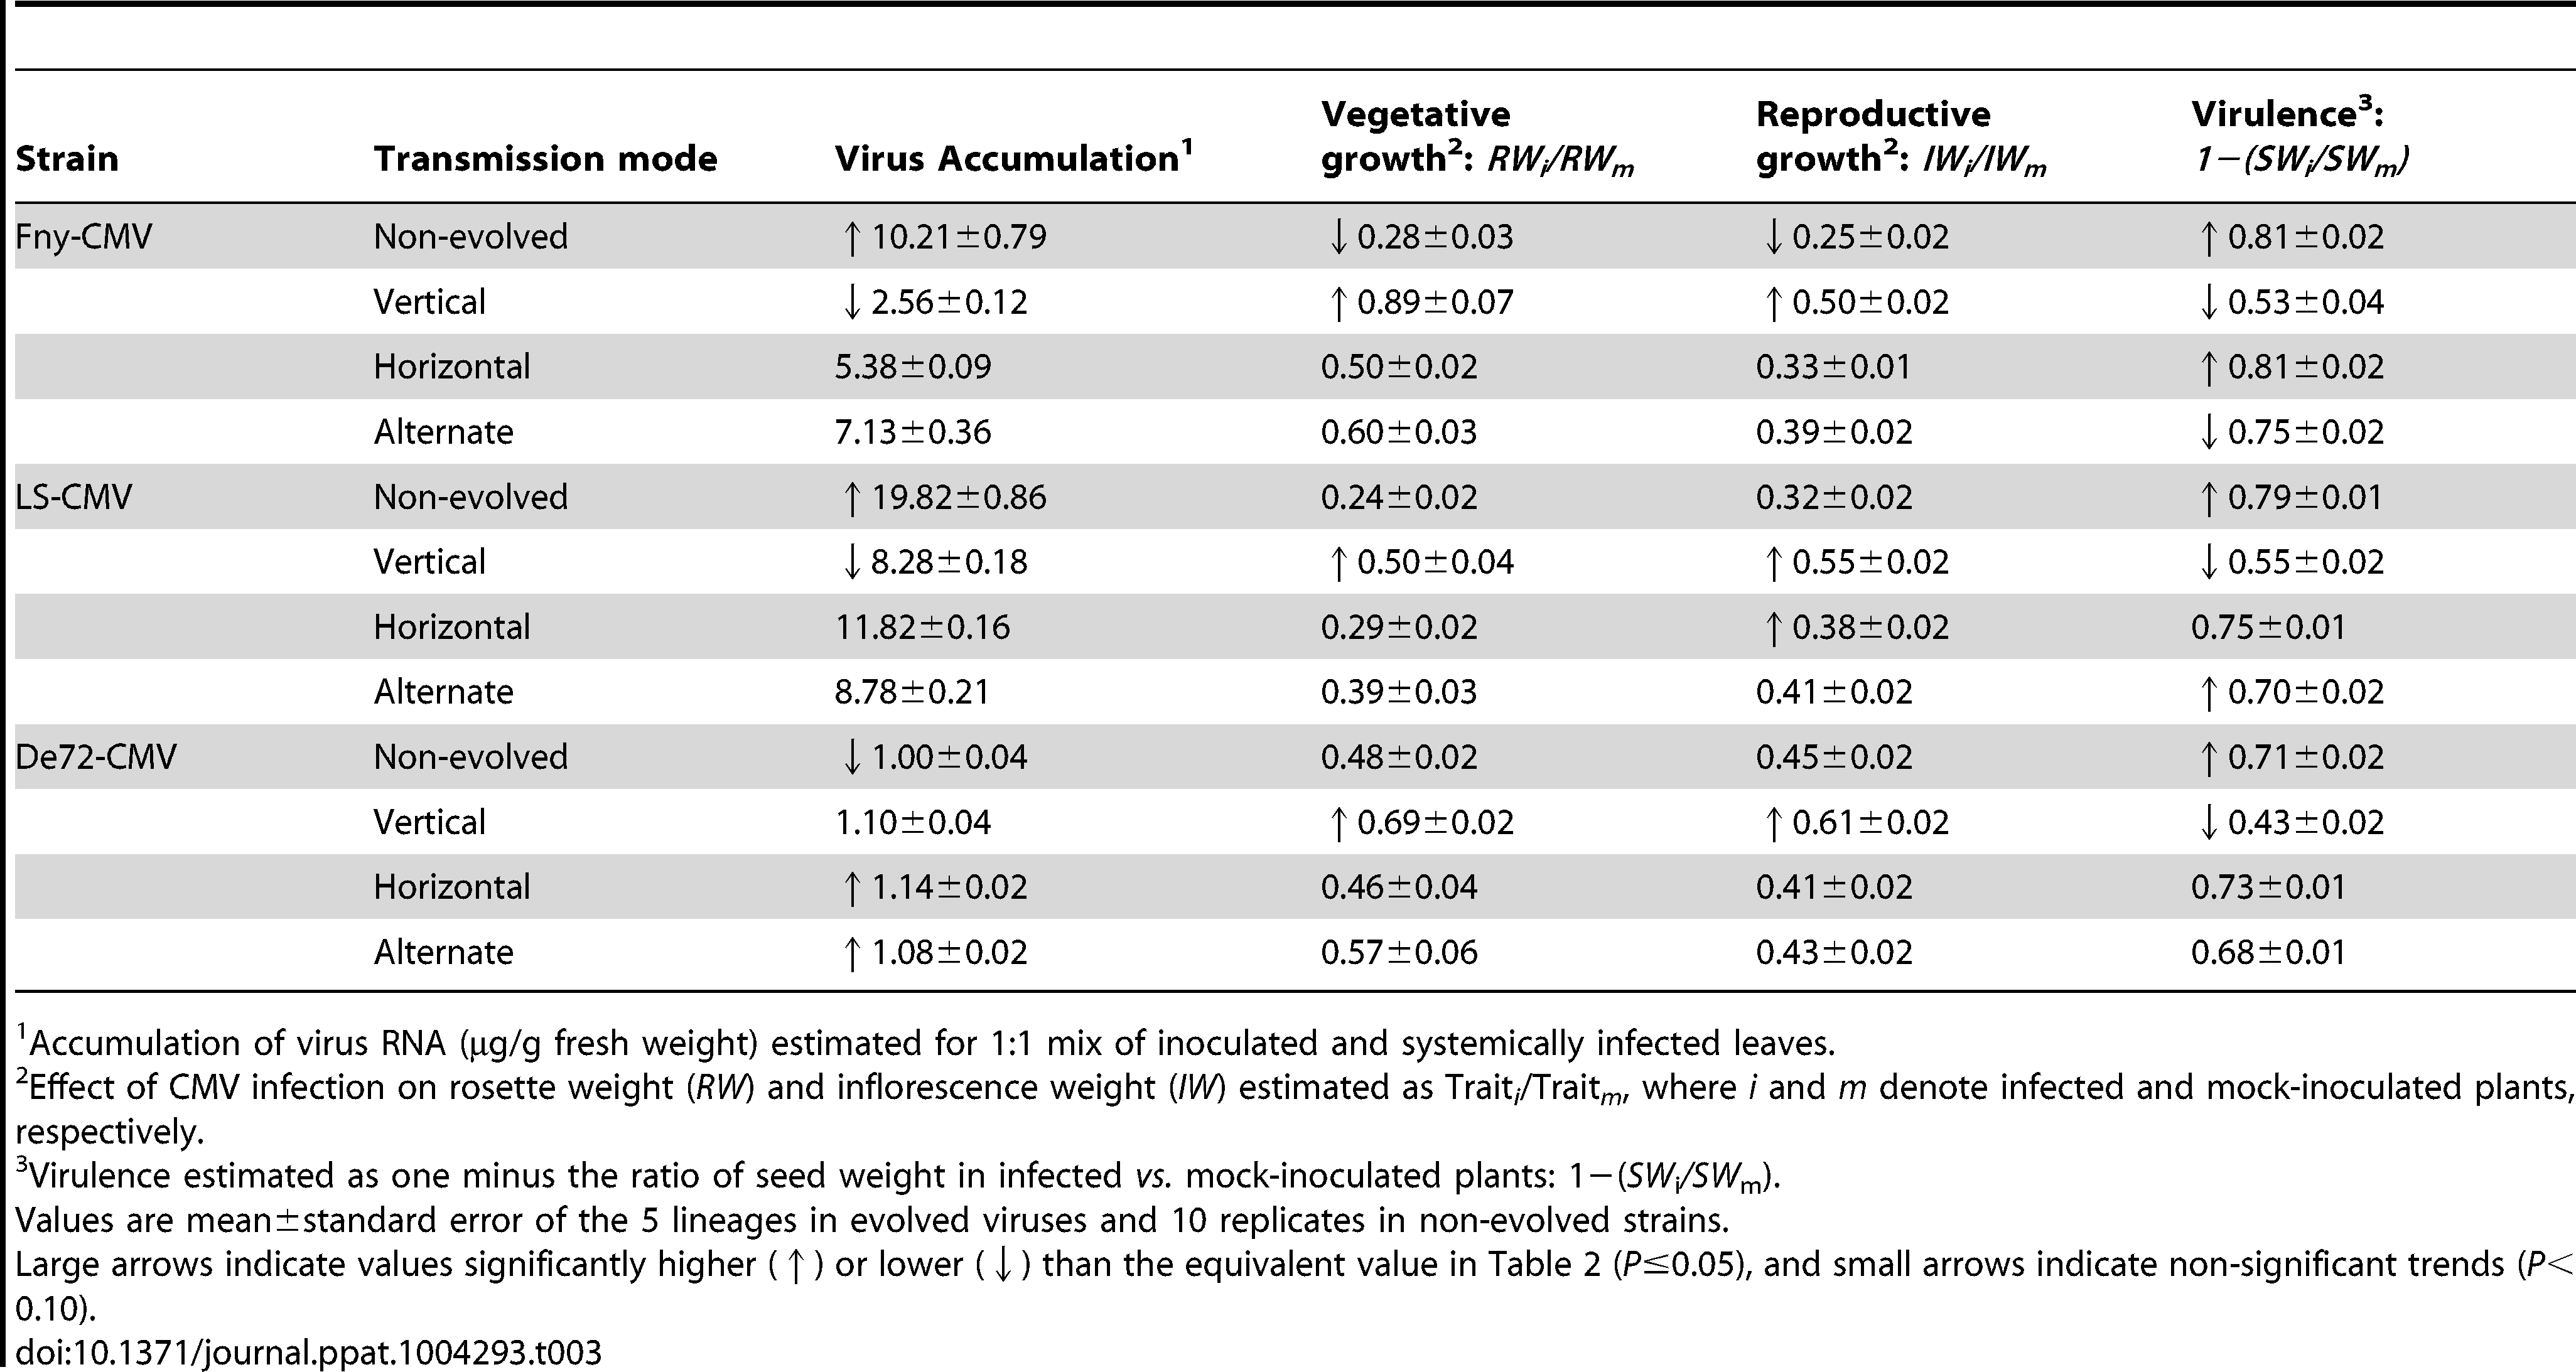 Estimates of virus accumulation, virus effects on vegetative and reproductive growth, and virulence in horizontally inoculated Cen-1 plants derived from the fifth vertical transmission passage.